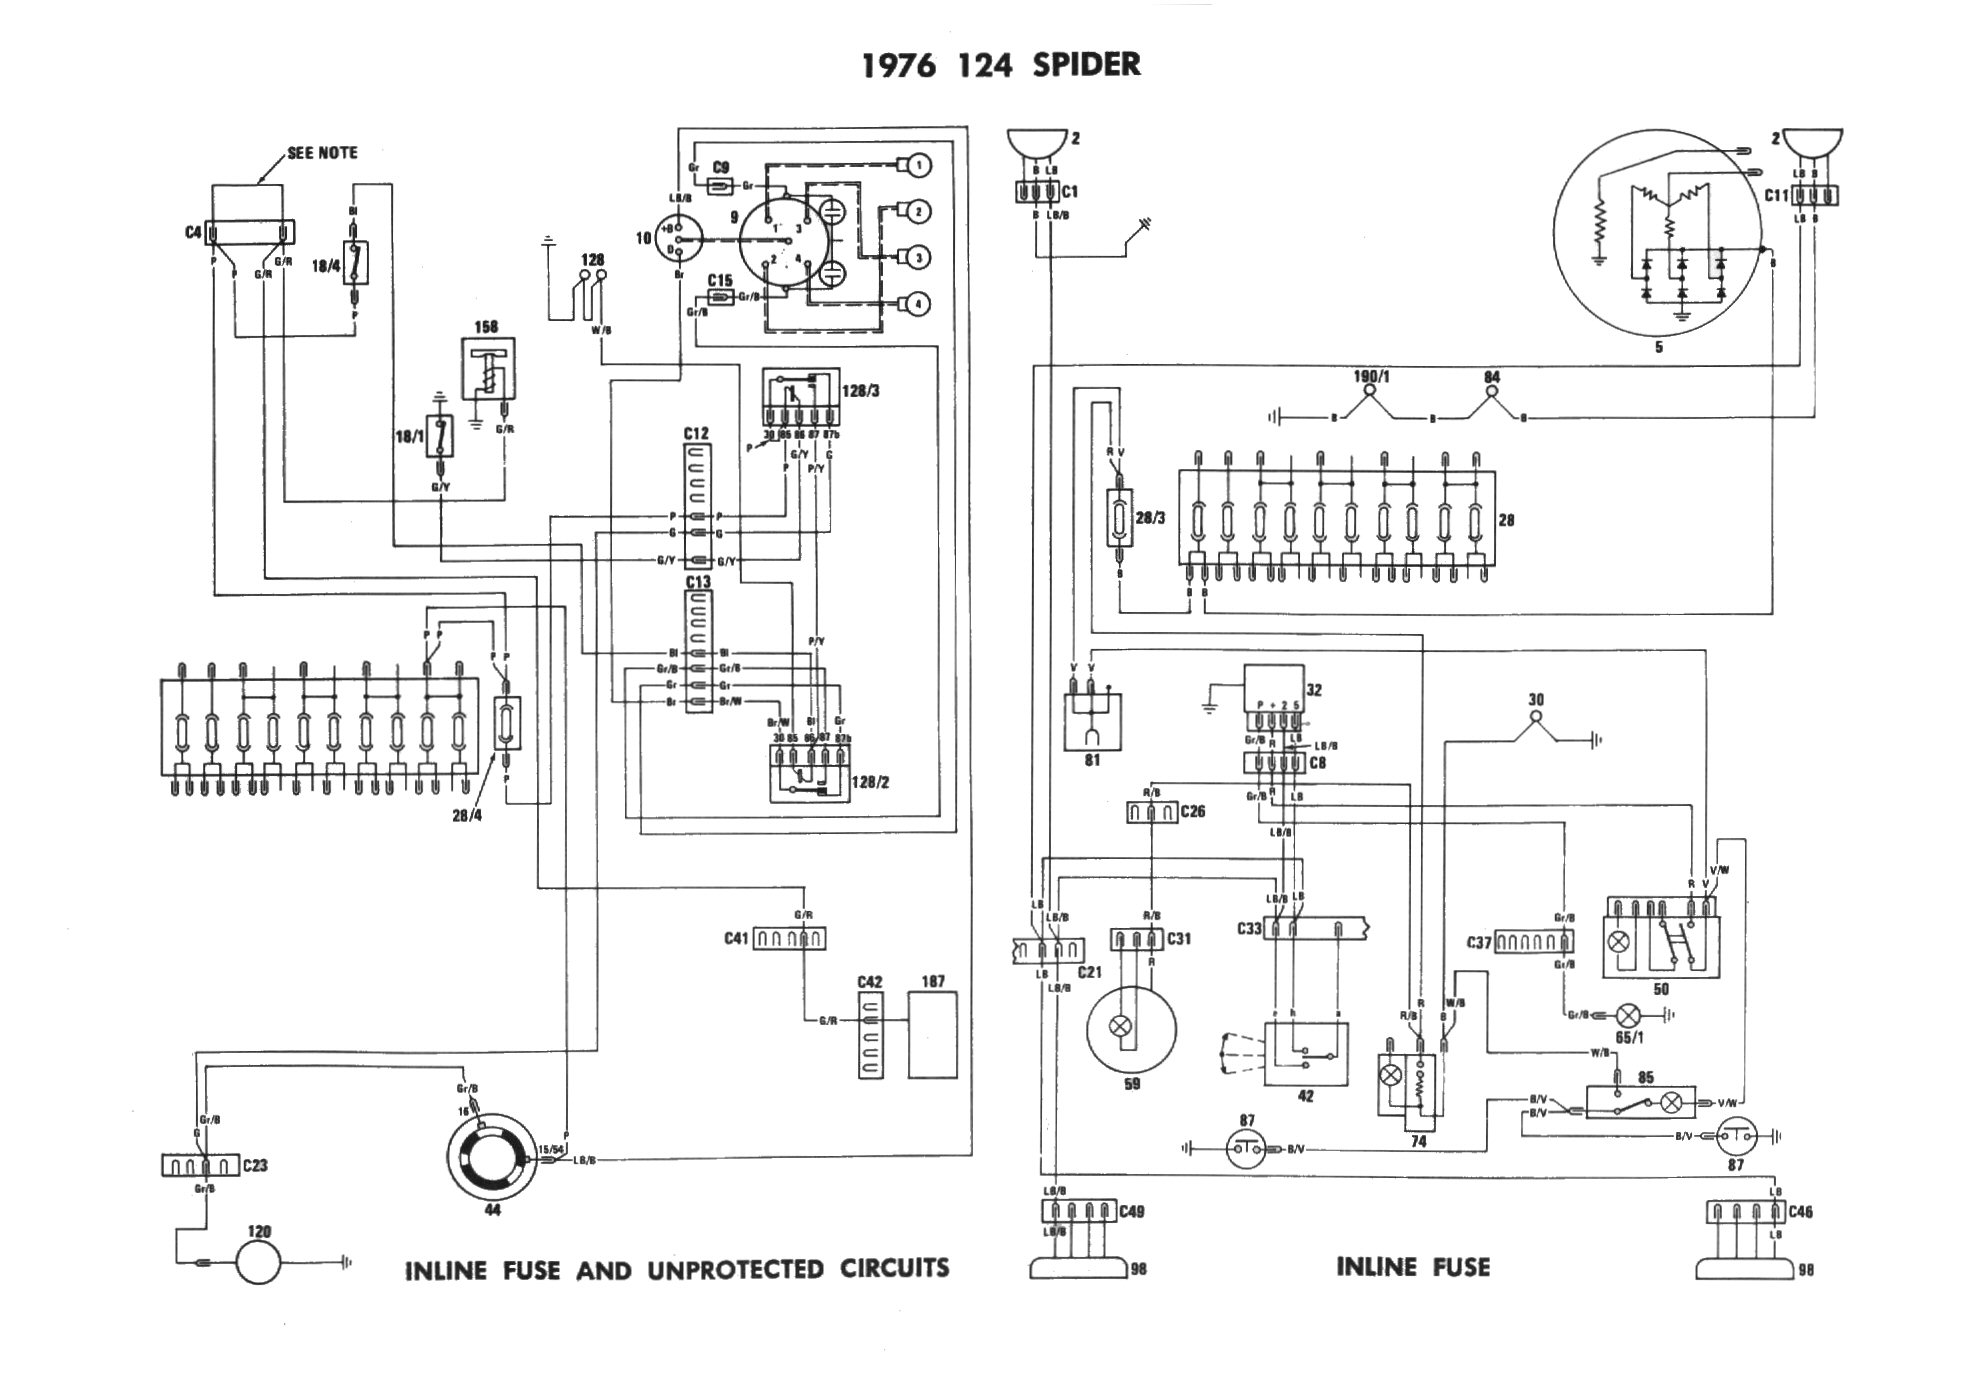 7 fiat 124 spider la bella macchina on repeated request 1977 fiat 124 spider fuse box diagram at gsmx.co